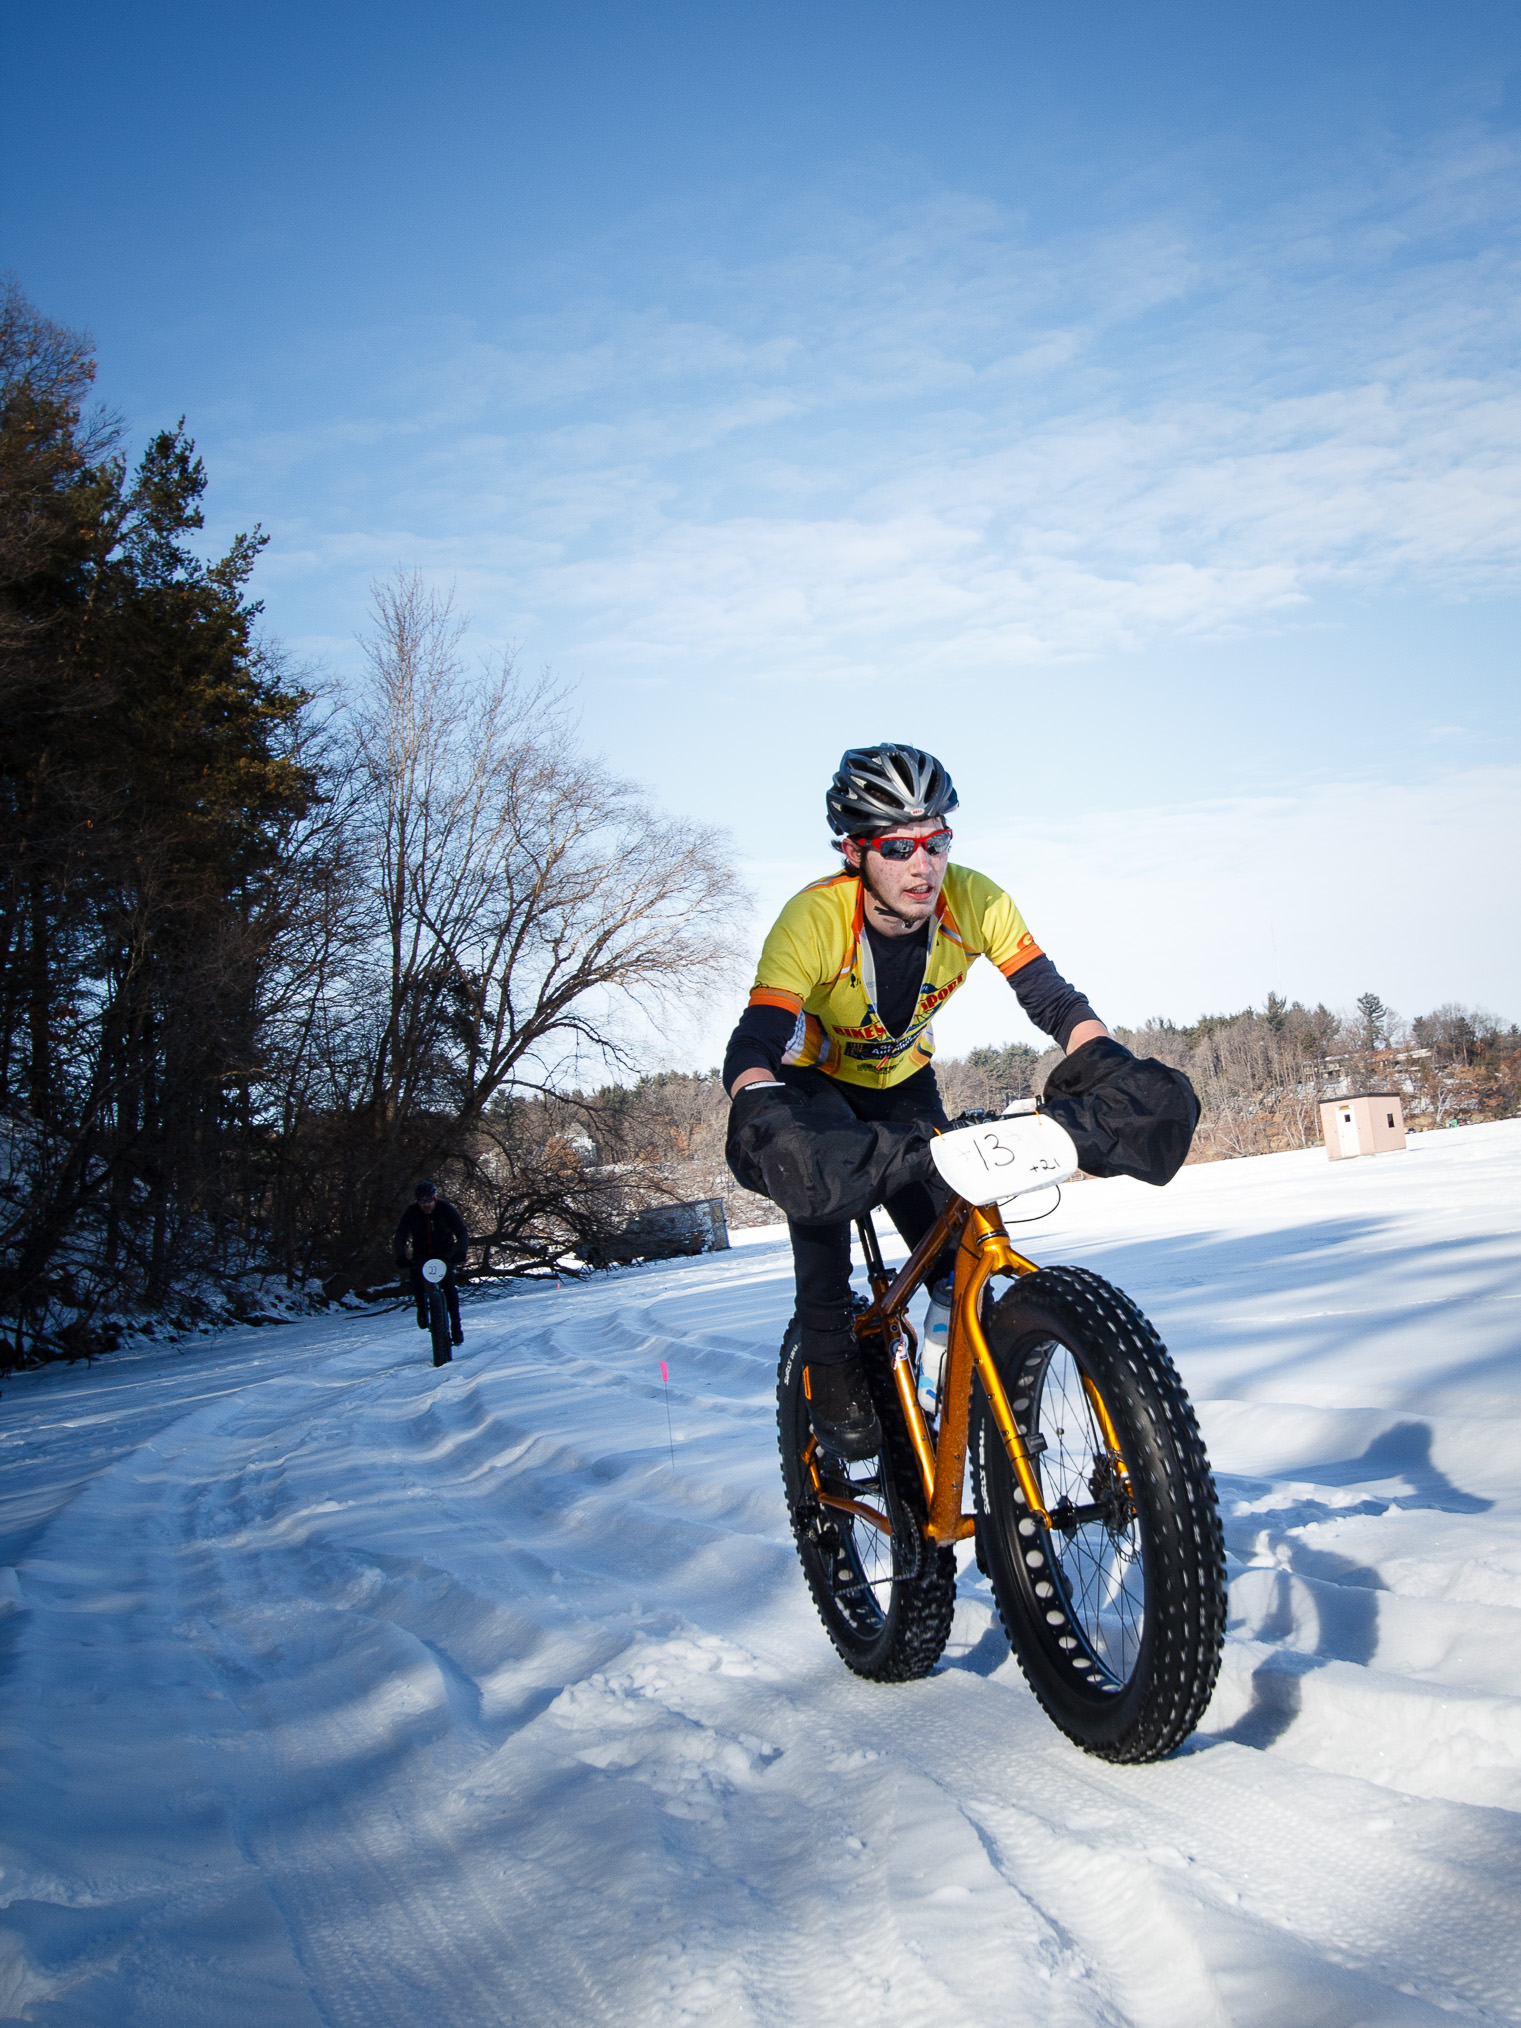 Winter biking vermont